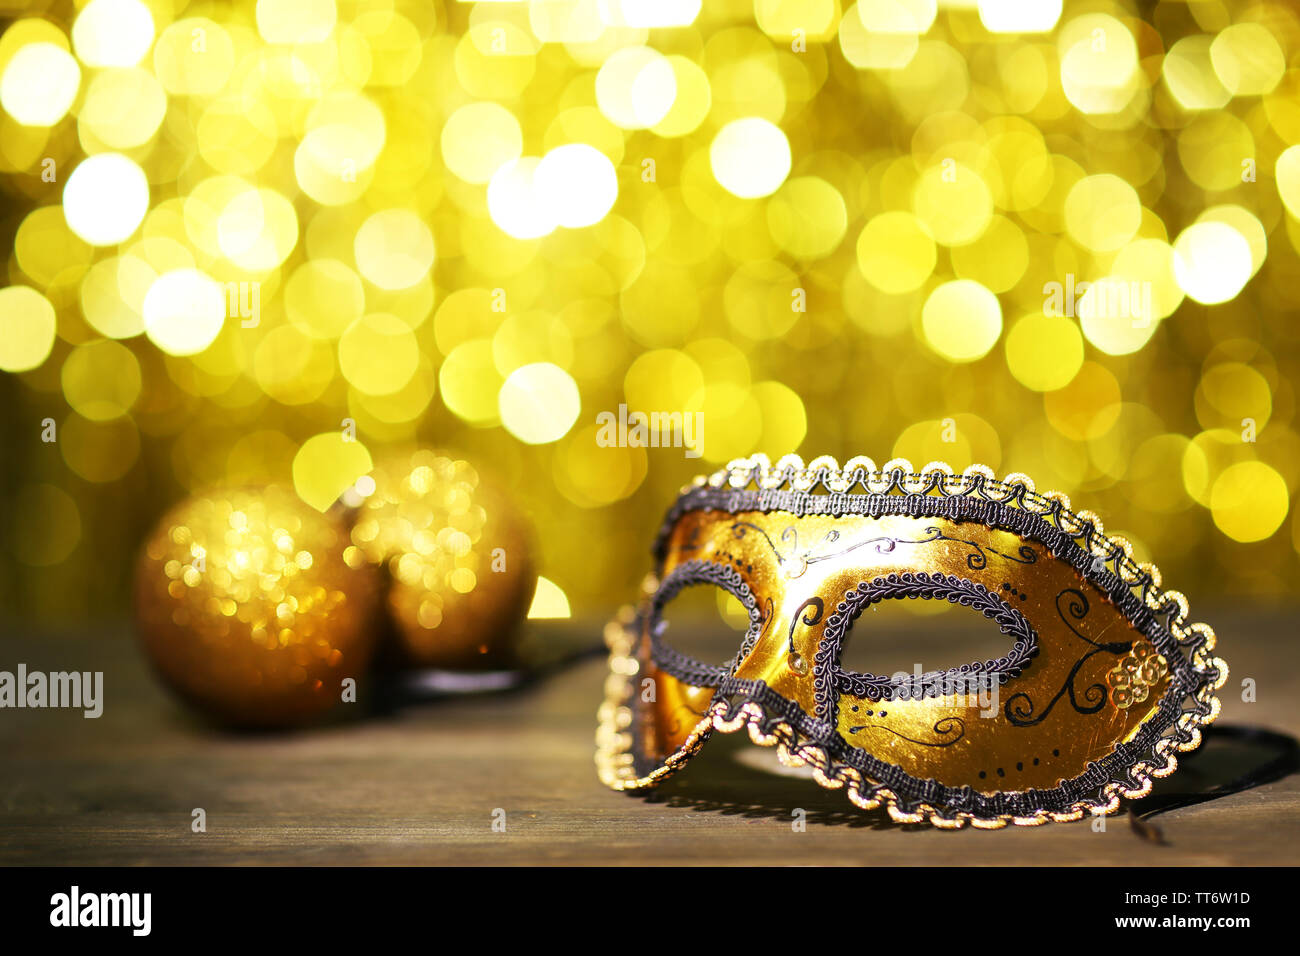 Beautiful carnival mask on table on golden background - Stock Image